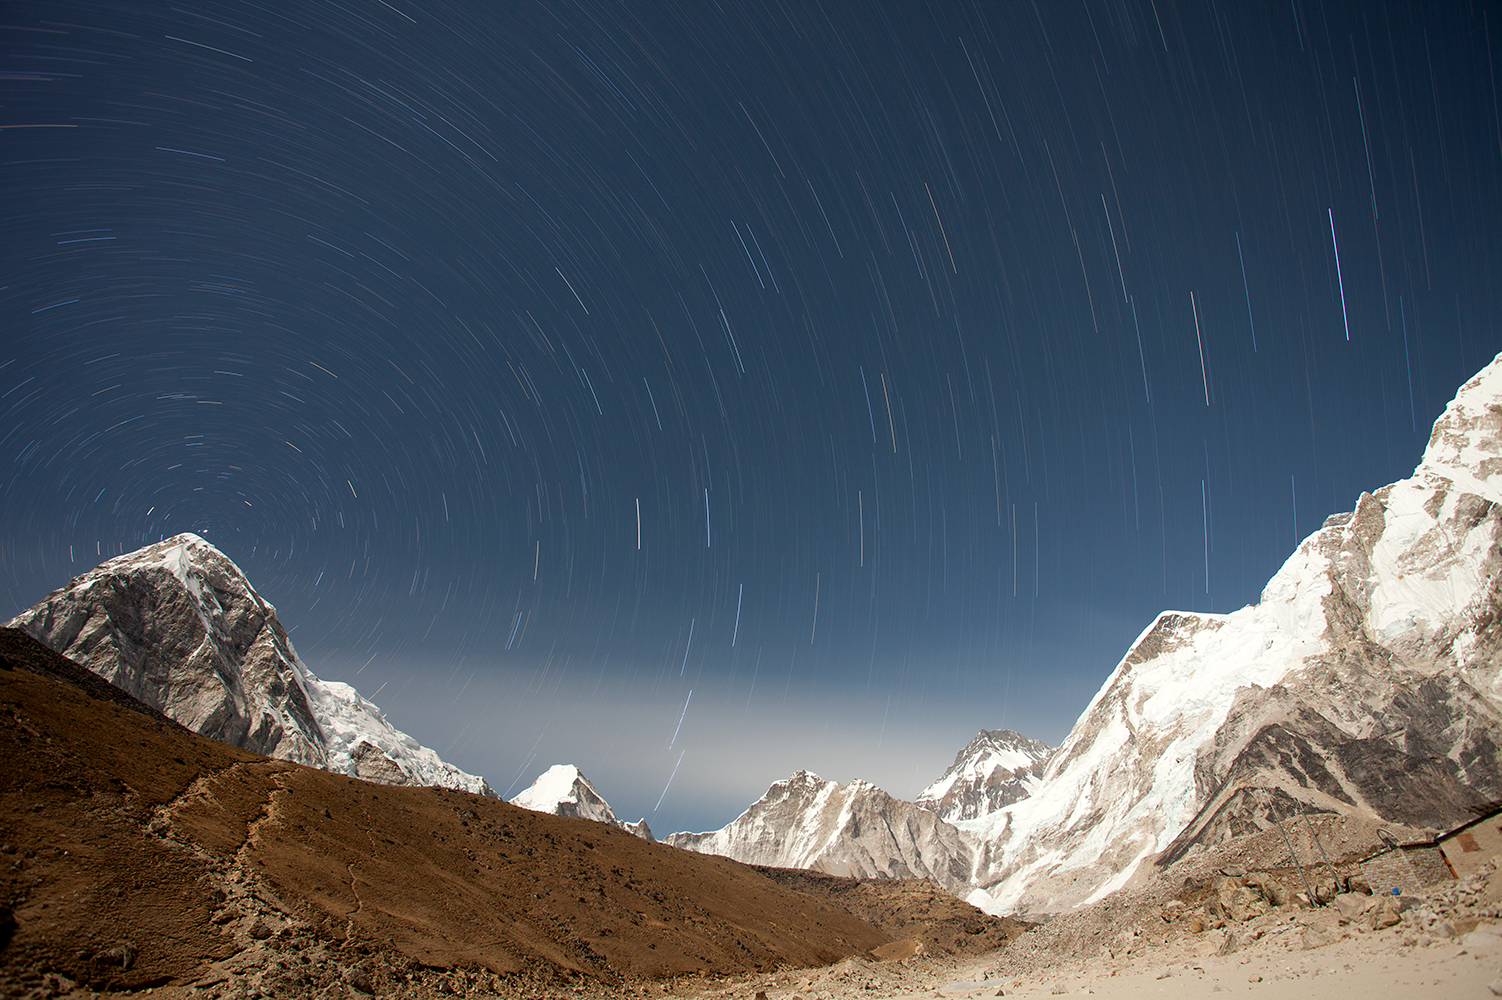 astrophotography with star trails